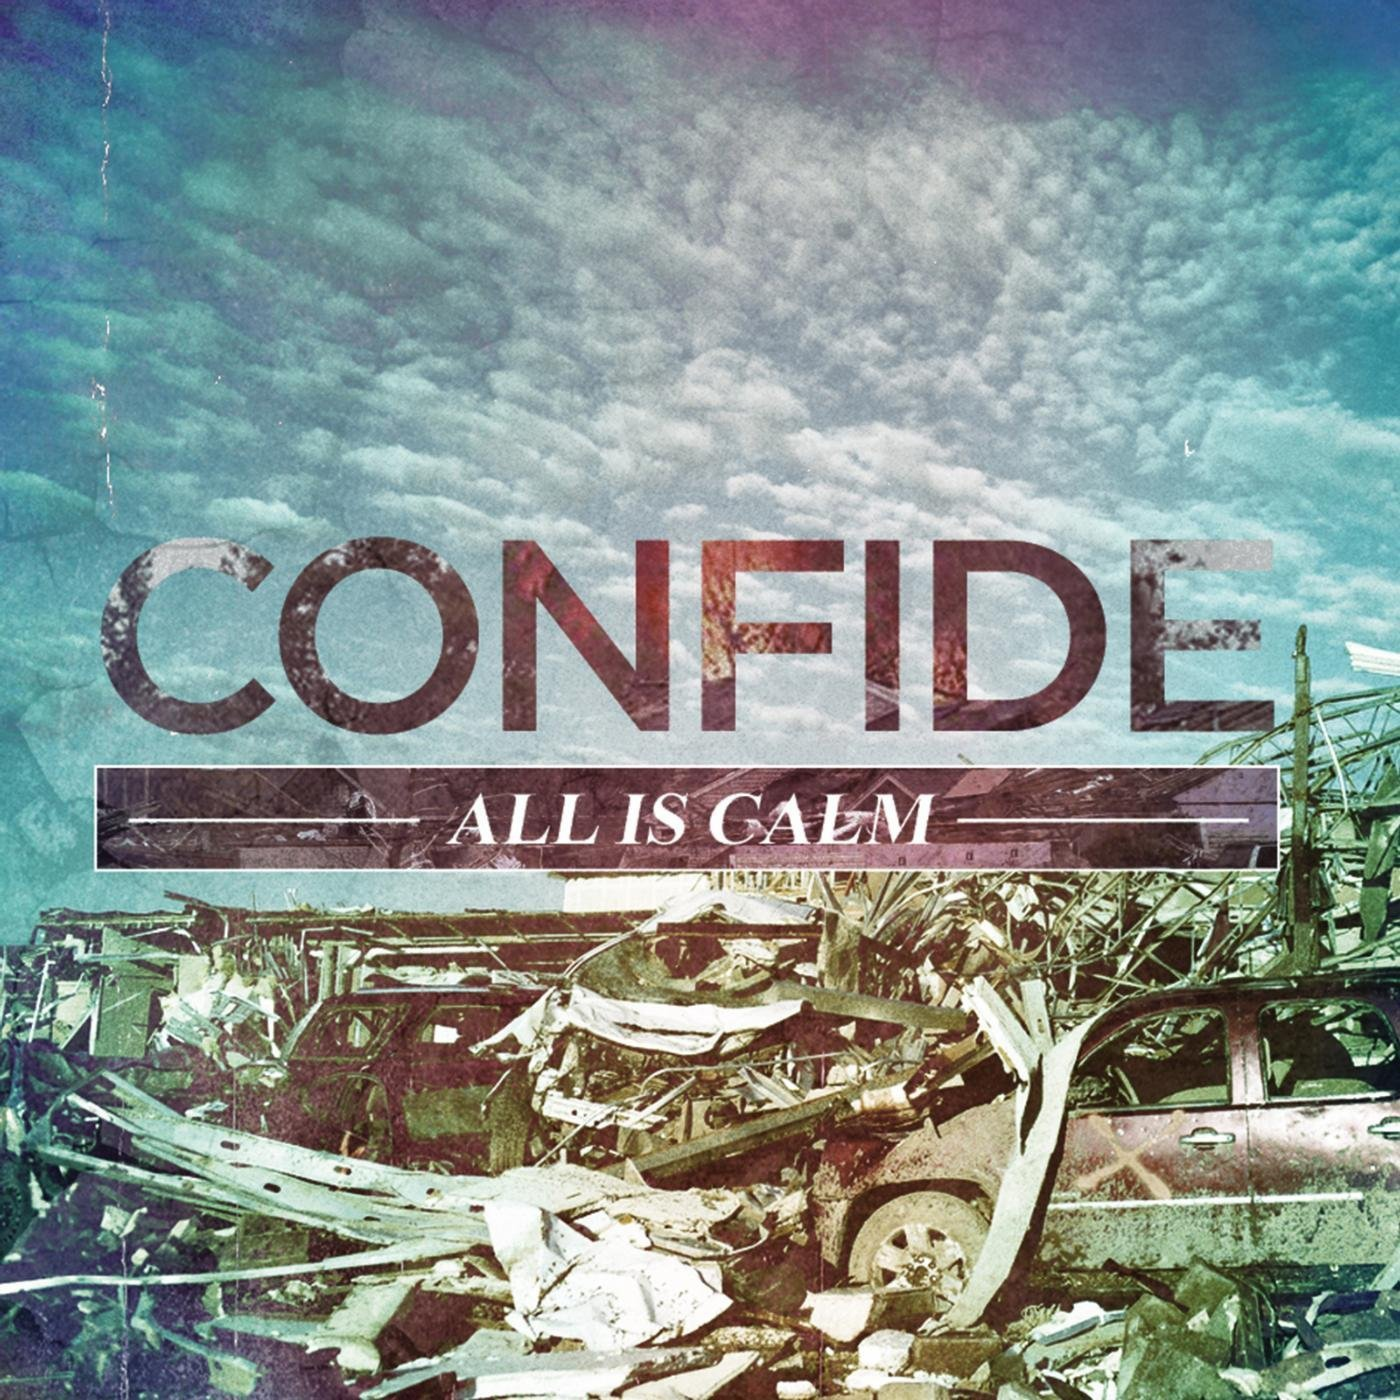 Confide - All Is Calm (Remastered) (2019)